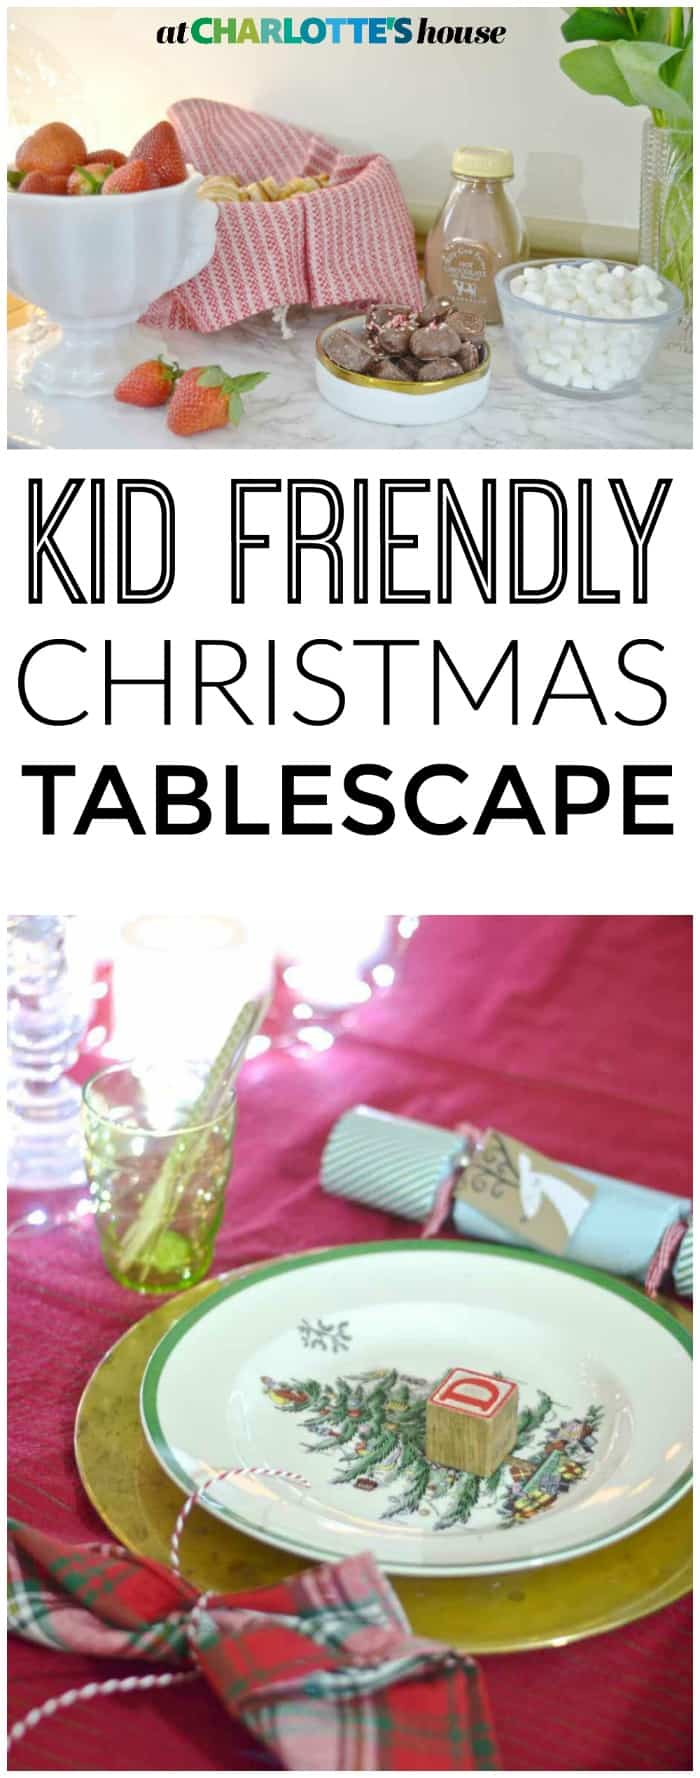 Setting a fun table doesn't have to be complicated when children are involved... this table is festive and kid friendly!